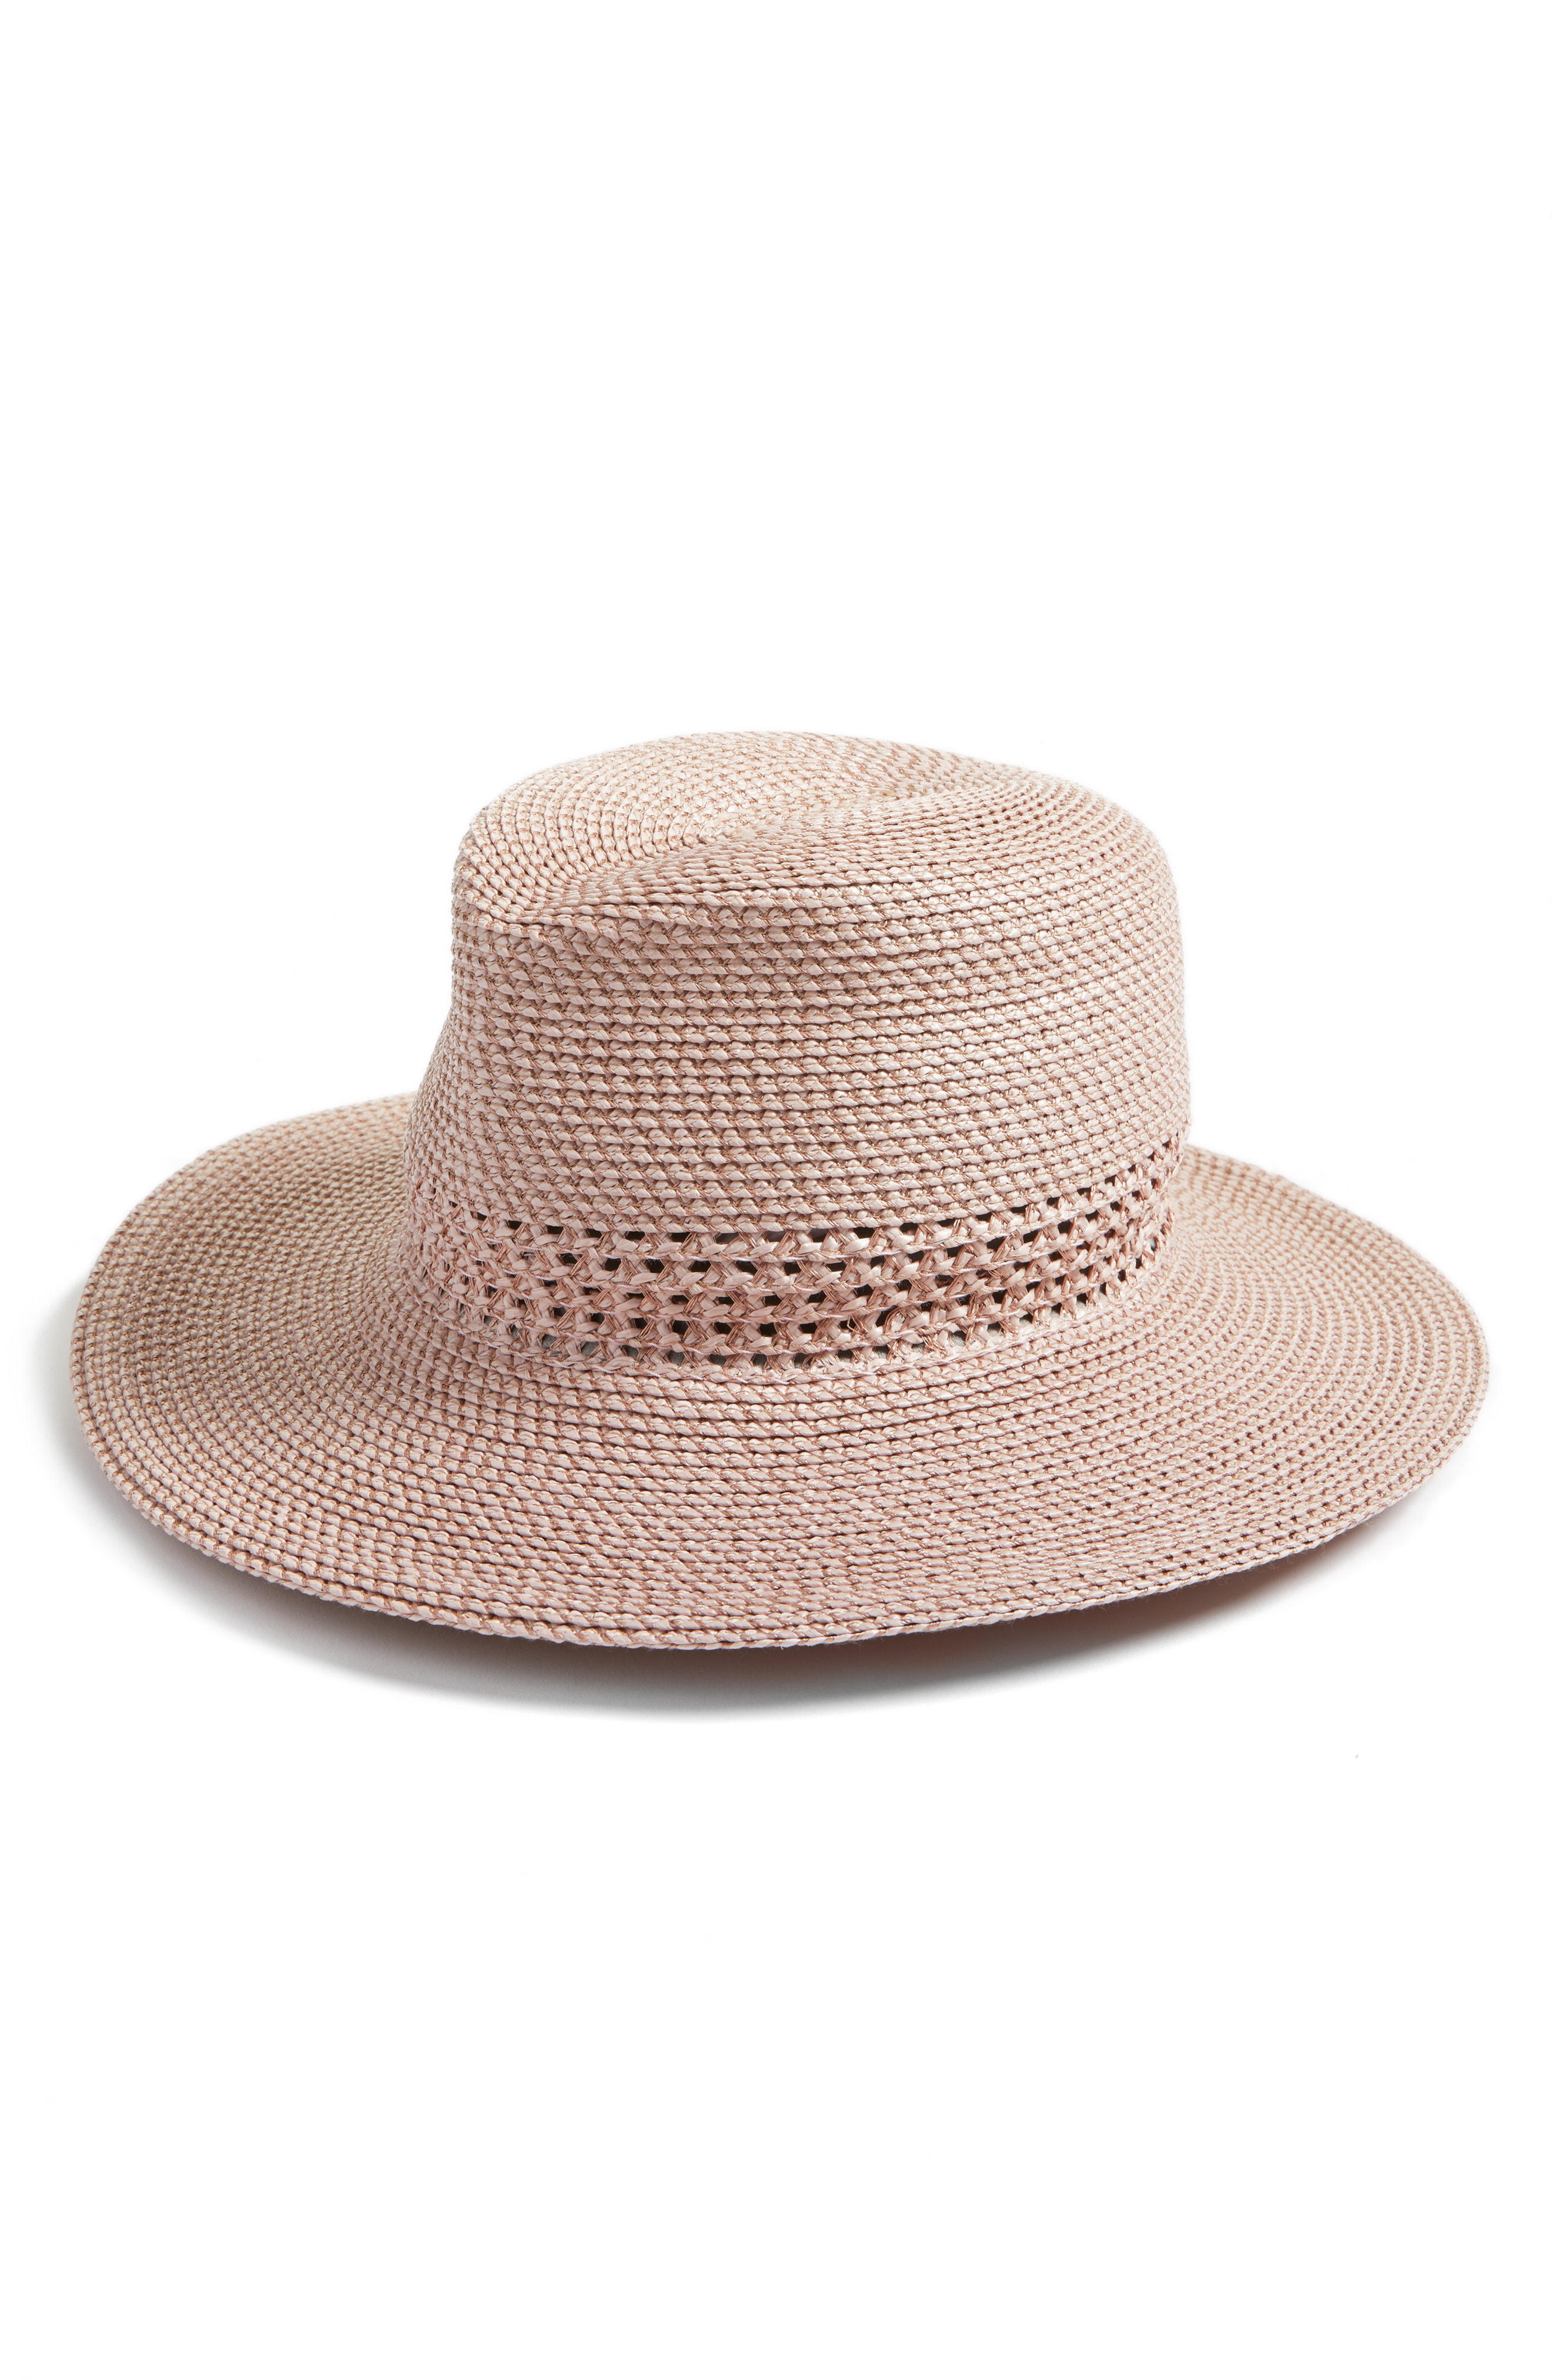 a3a5468143a14 Eric Javits Bayou Packable Squishee Fedora - White In White Mix ...